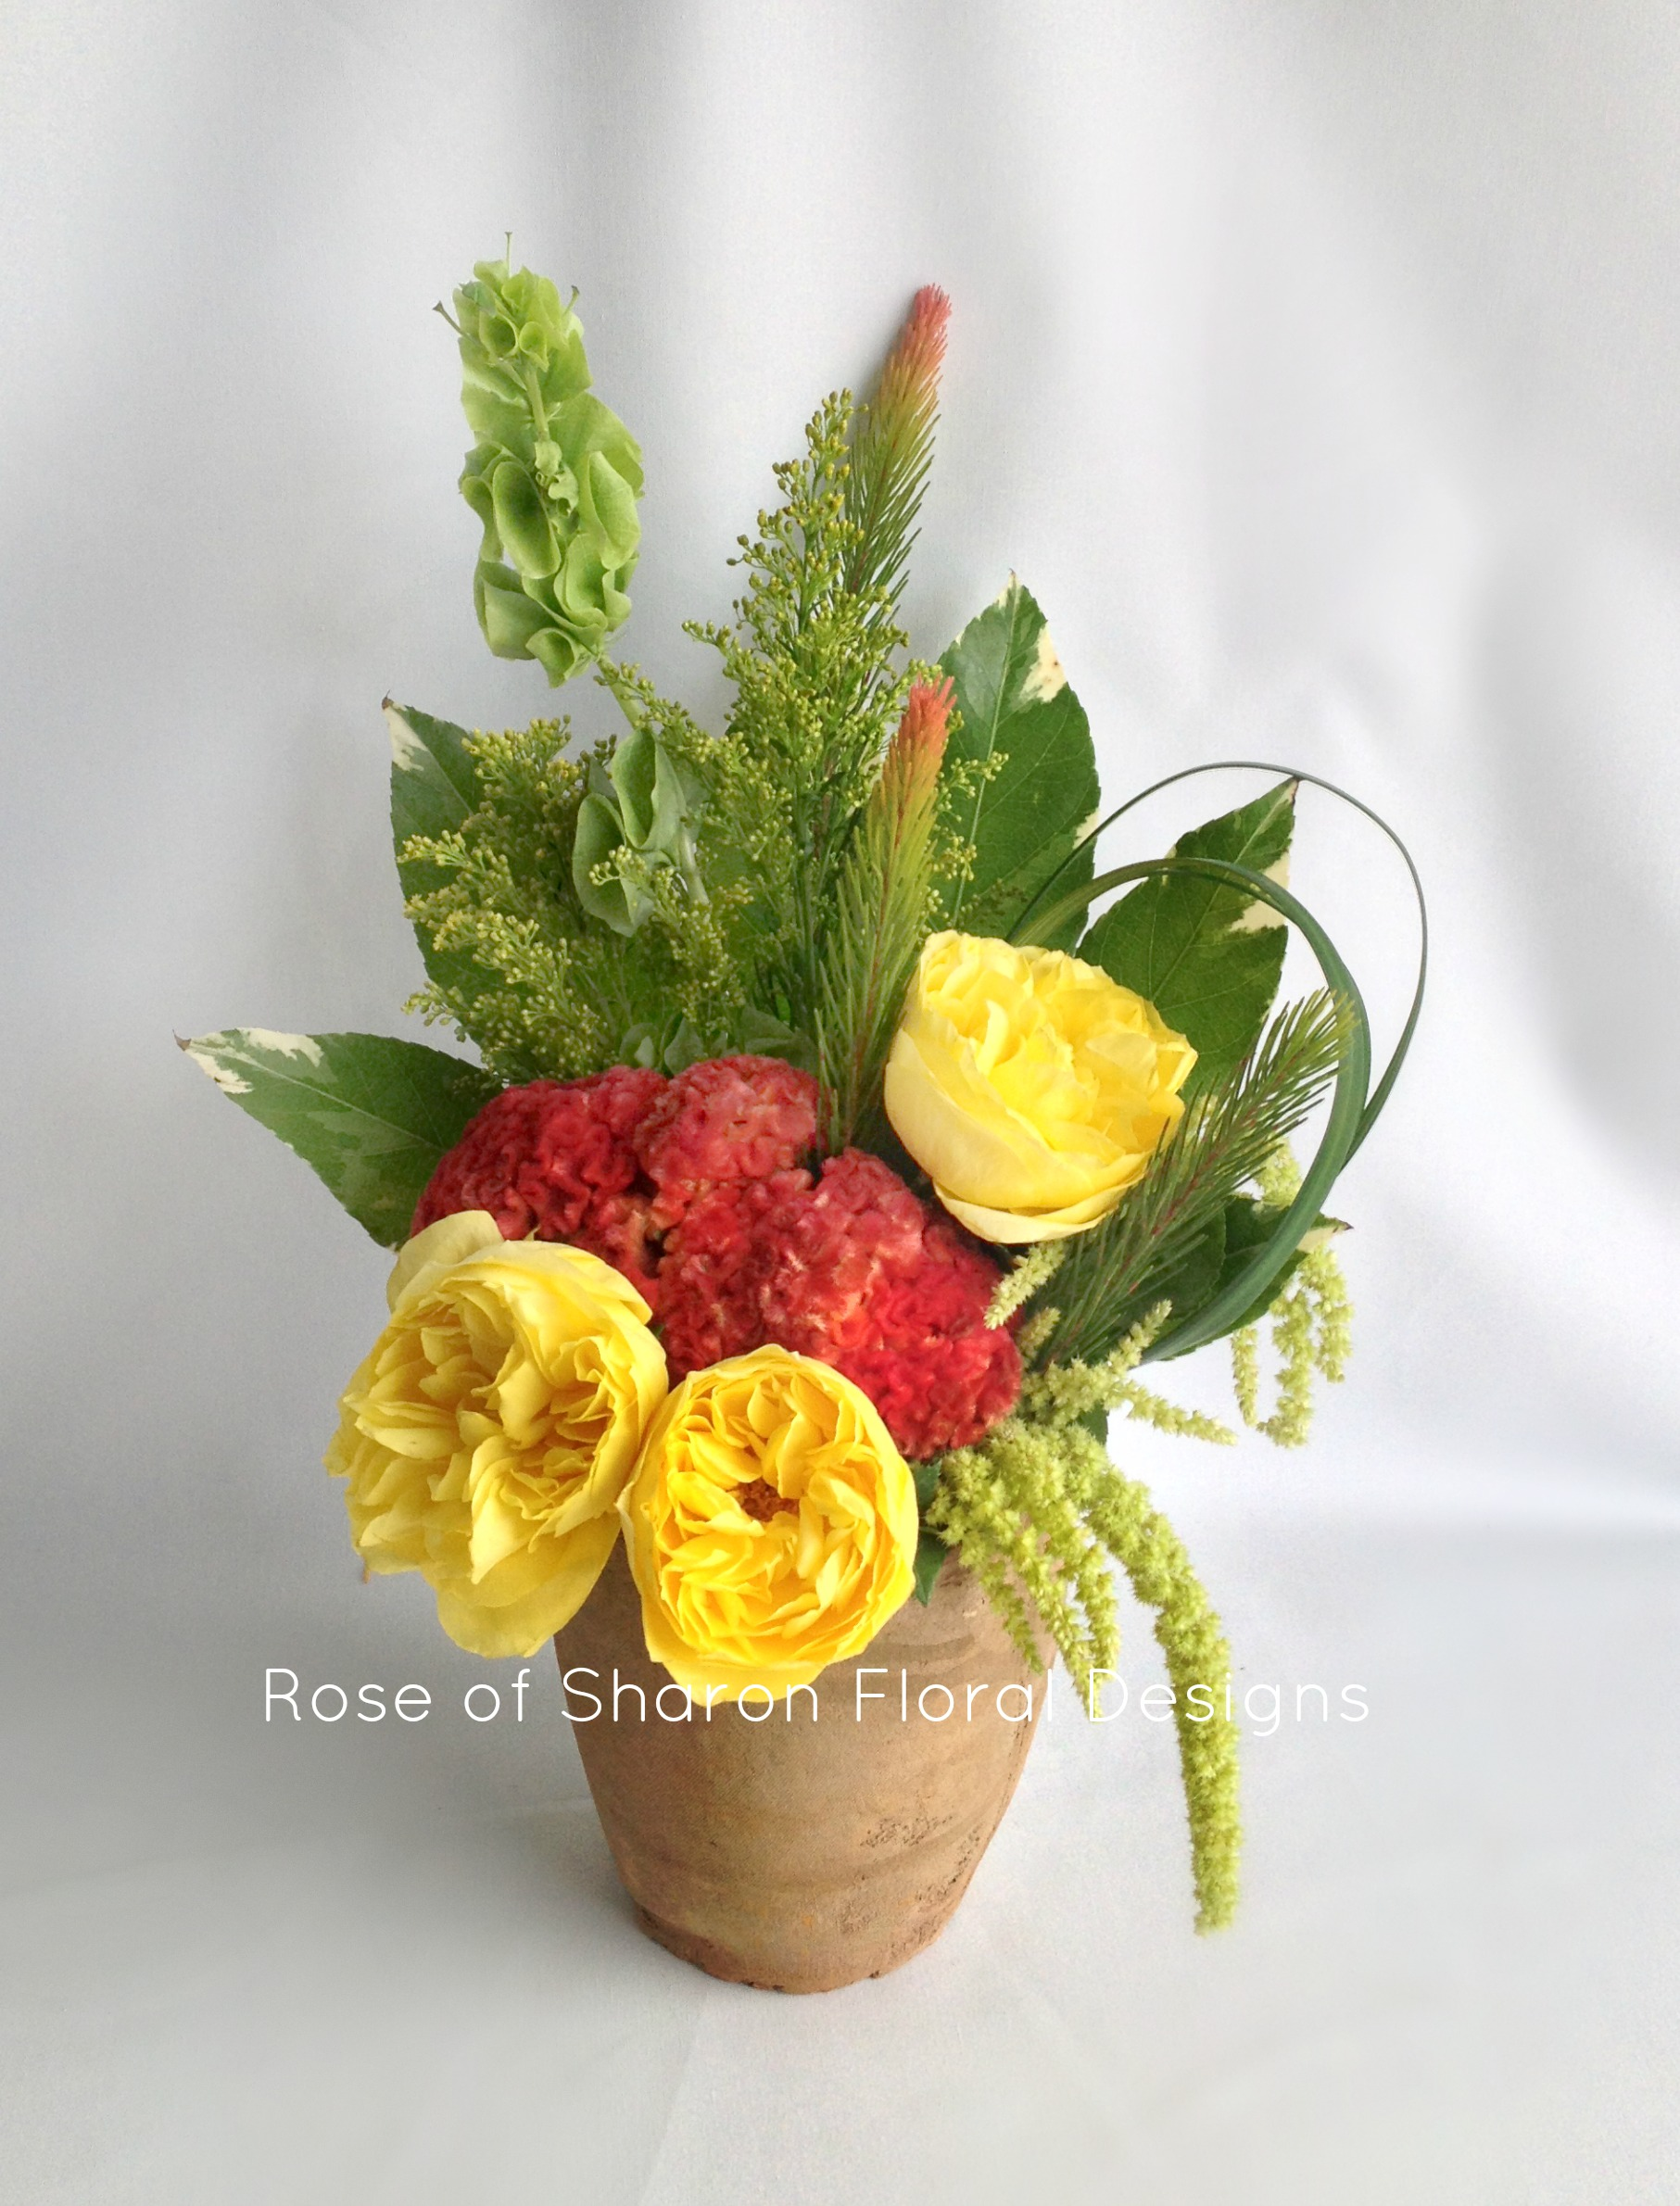 Bells of Ireland, Garden Roses and Carnations, Rose of Sharon Floral Designs